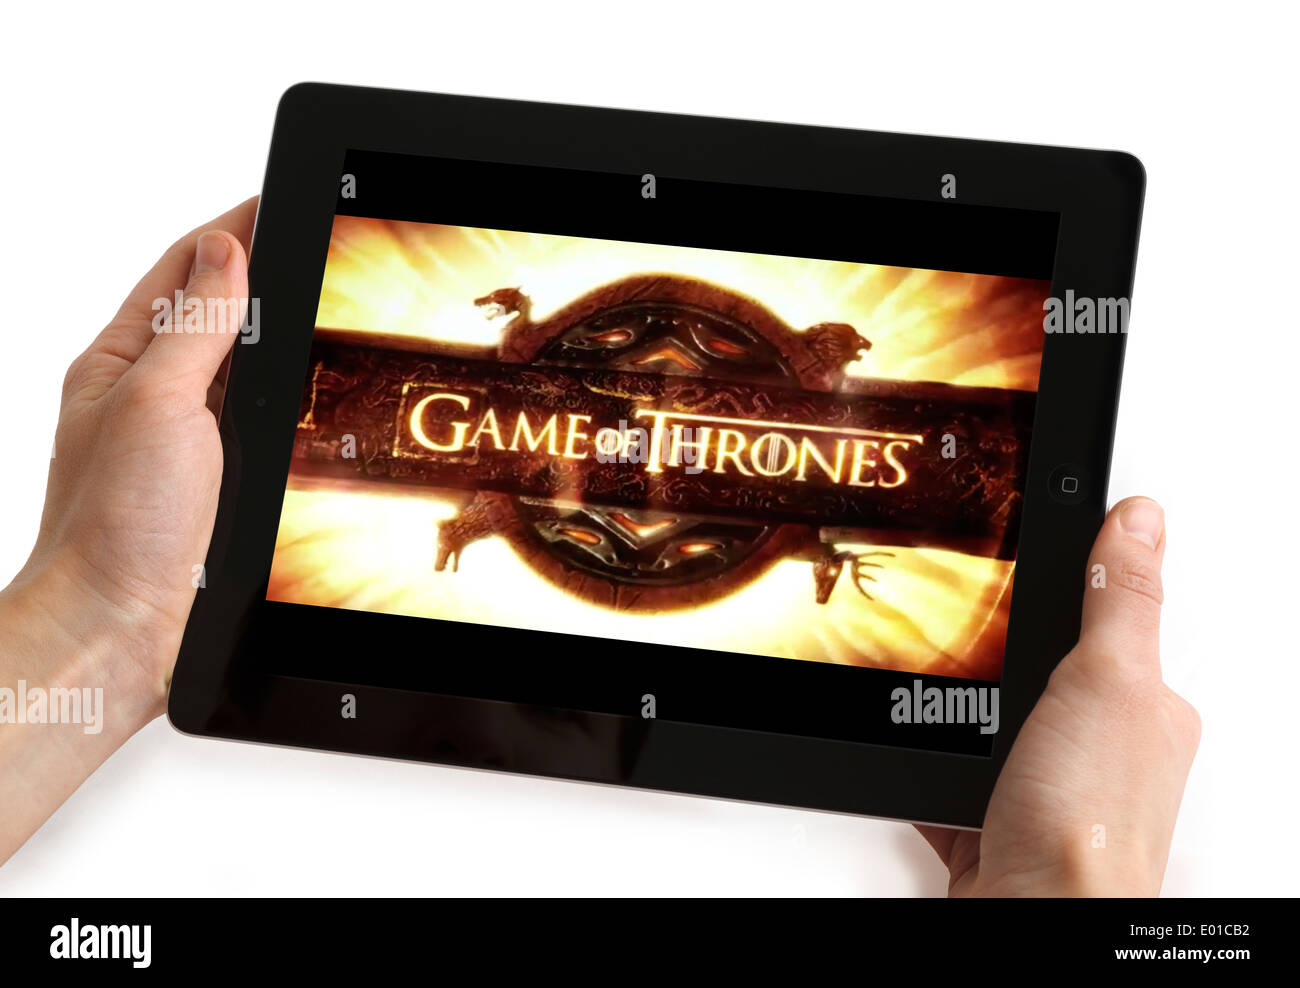 Watching 'Game of Thrones' on an Apple iPad tablet computer - Stock Image